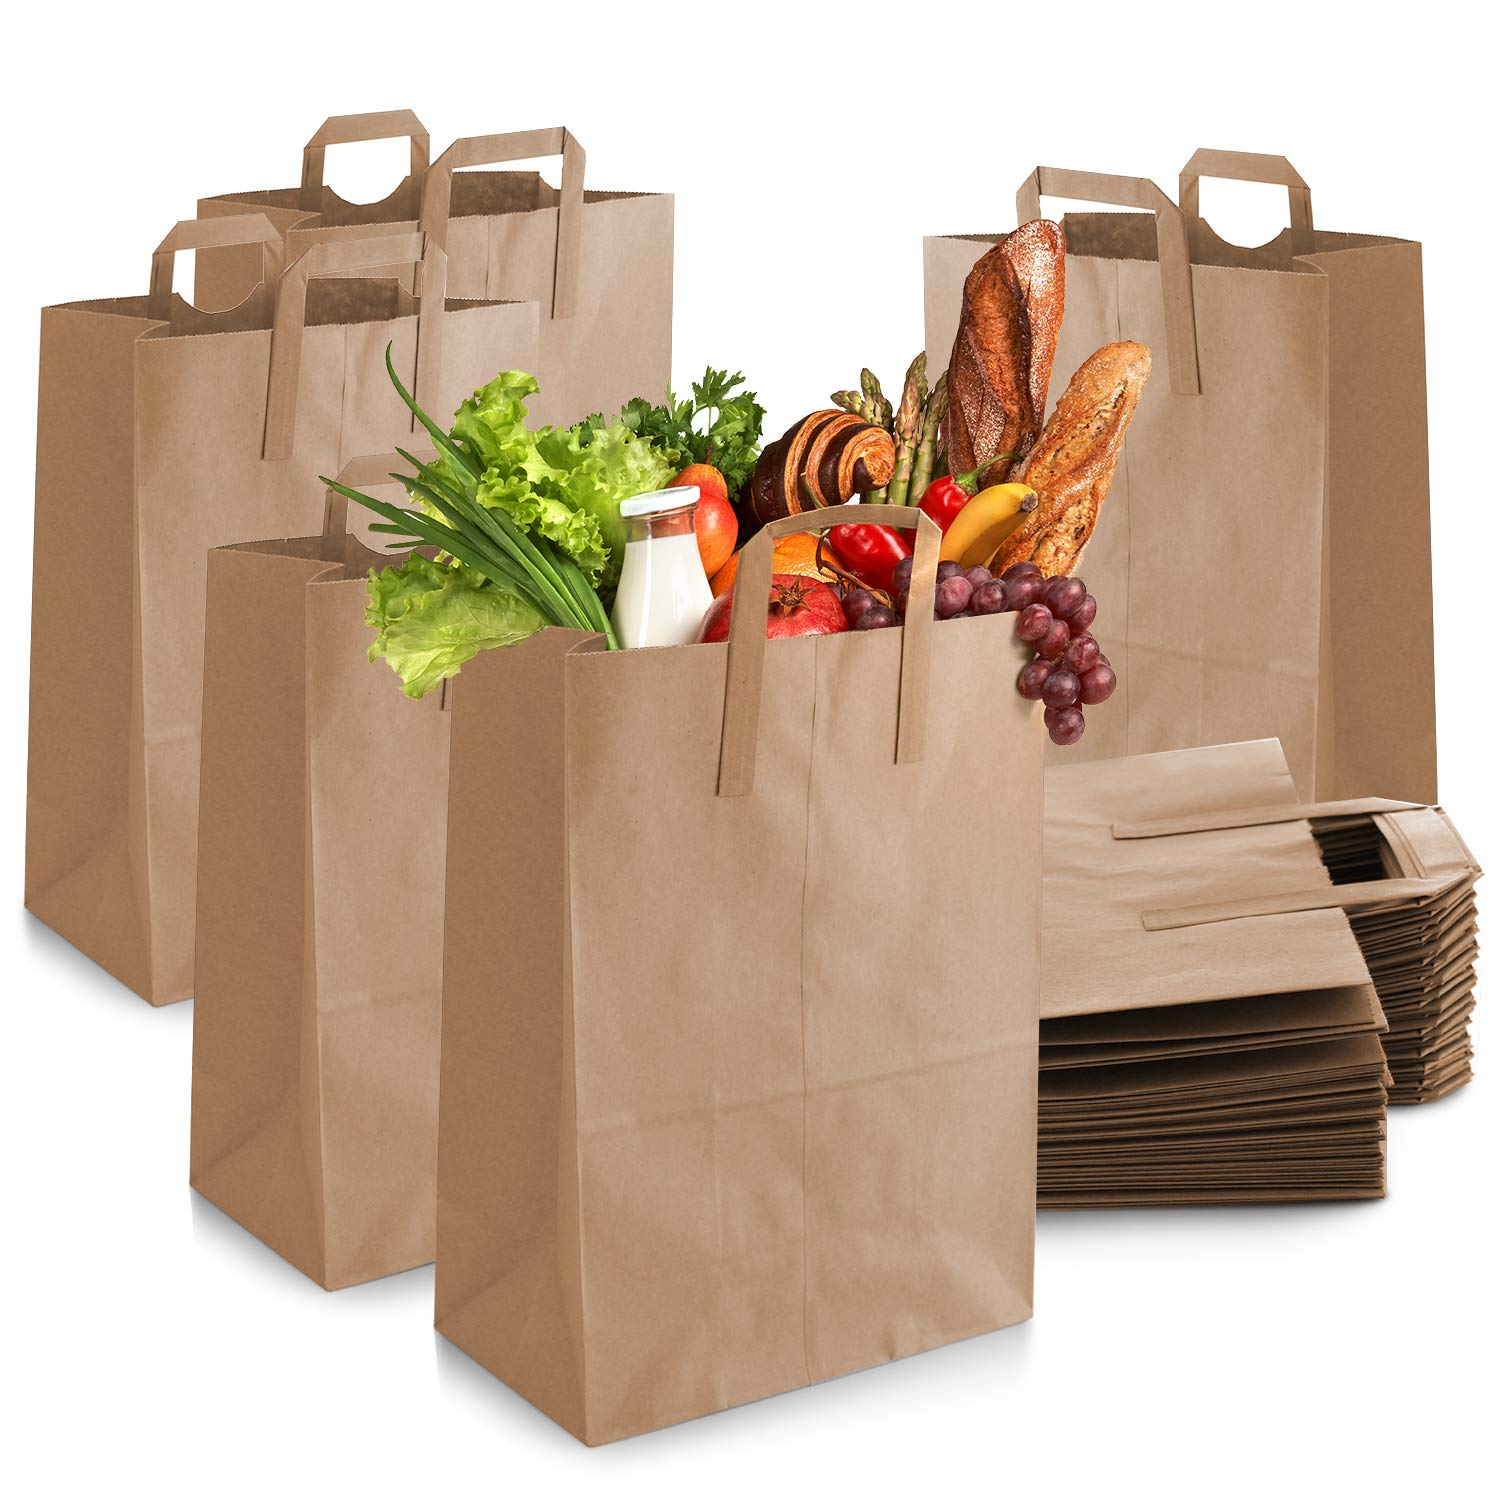 Paper Bags with Handles Bulk [50 Pack] - Brown Paper Grocery Bag - Large Brown Paper Bags with Handles, Durable, Great for Grocery Shopping, Delivery or take Out Orders.12